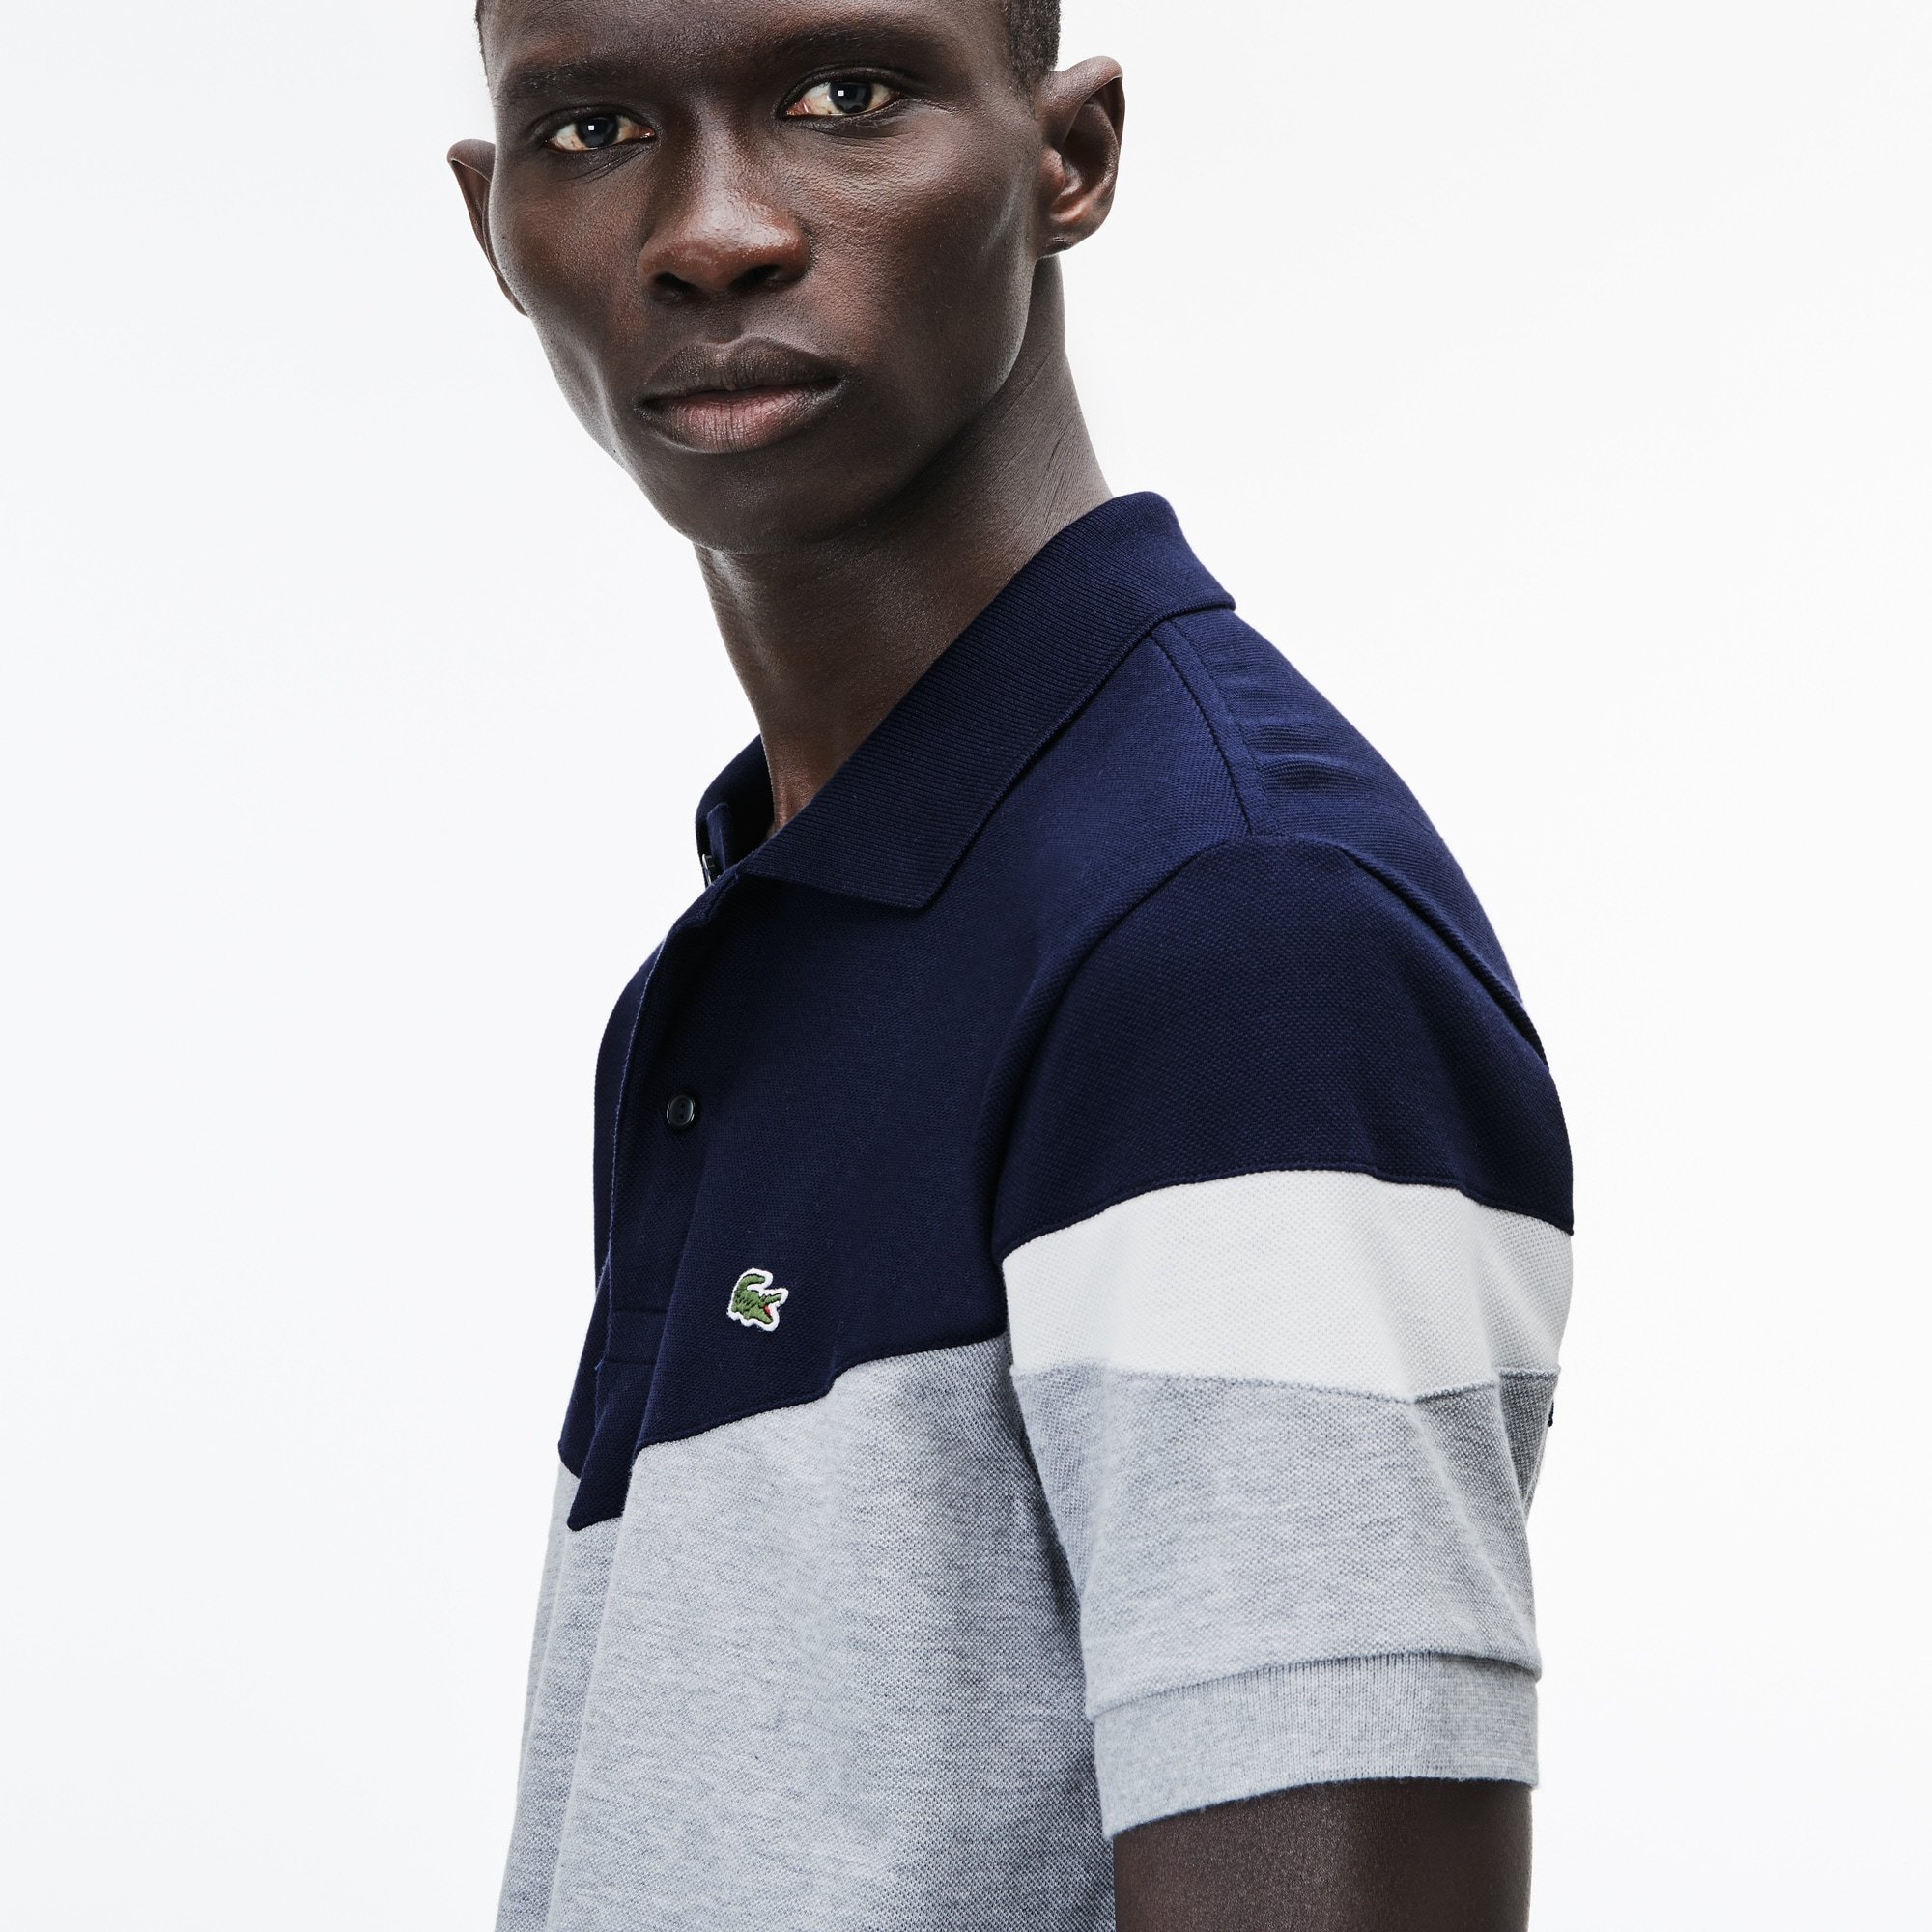 af94a6f7aa Homme Et Longues Polo Polos Lacoste Courtes Manches RdqnvwWP